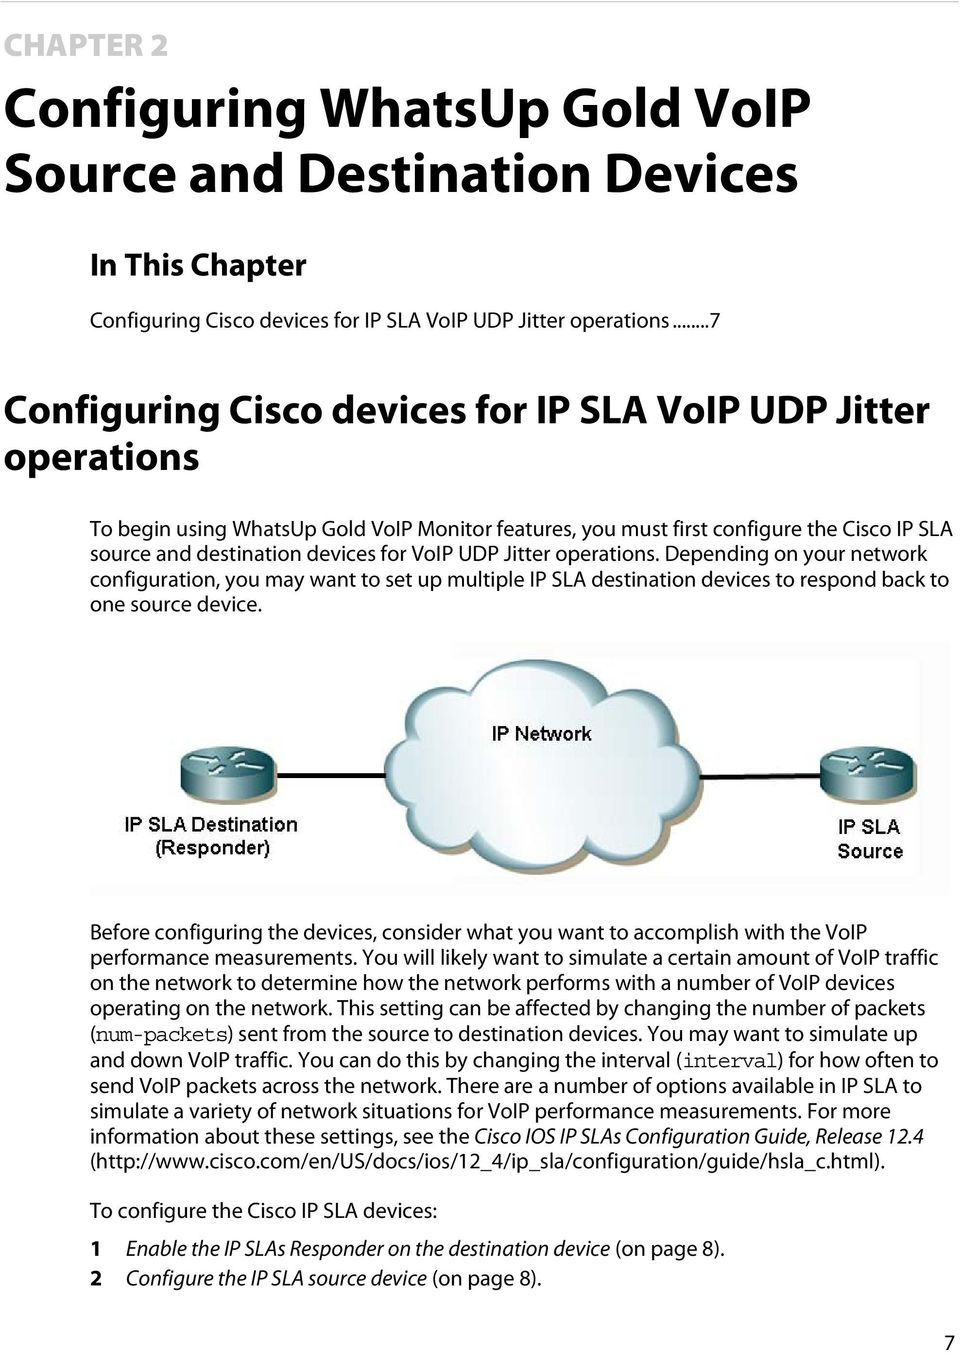 VoIP UDP Jitter operations. Depending on your network configuration, you may want to set up multiple IP SLA destination devices to respond back to one source device.